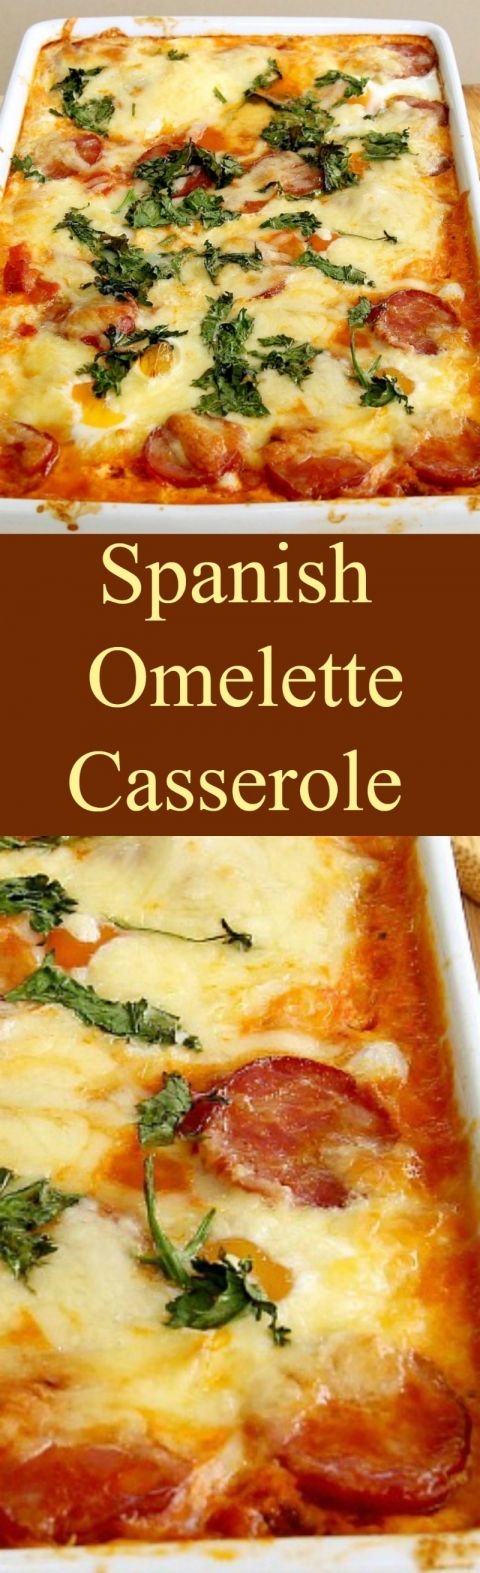 Spanish Omelette Casserole. A very easy and flexible baked casserole ...